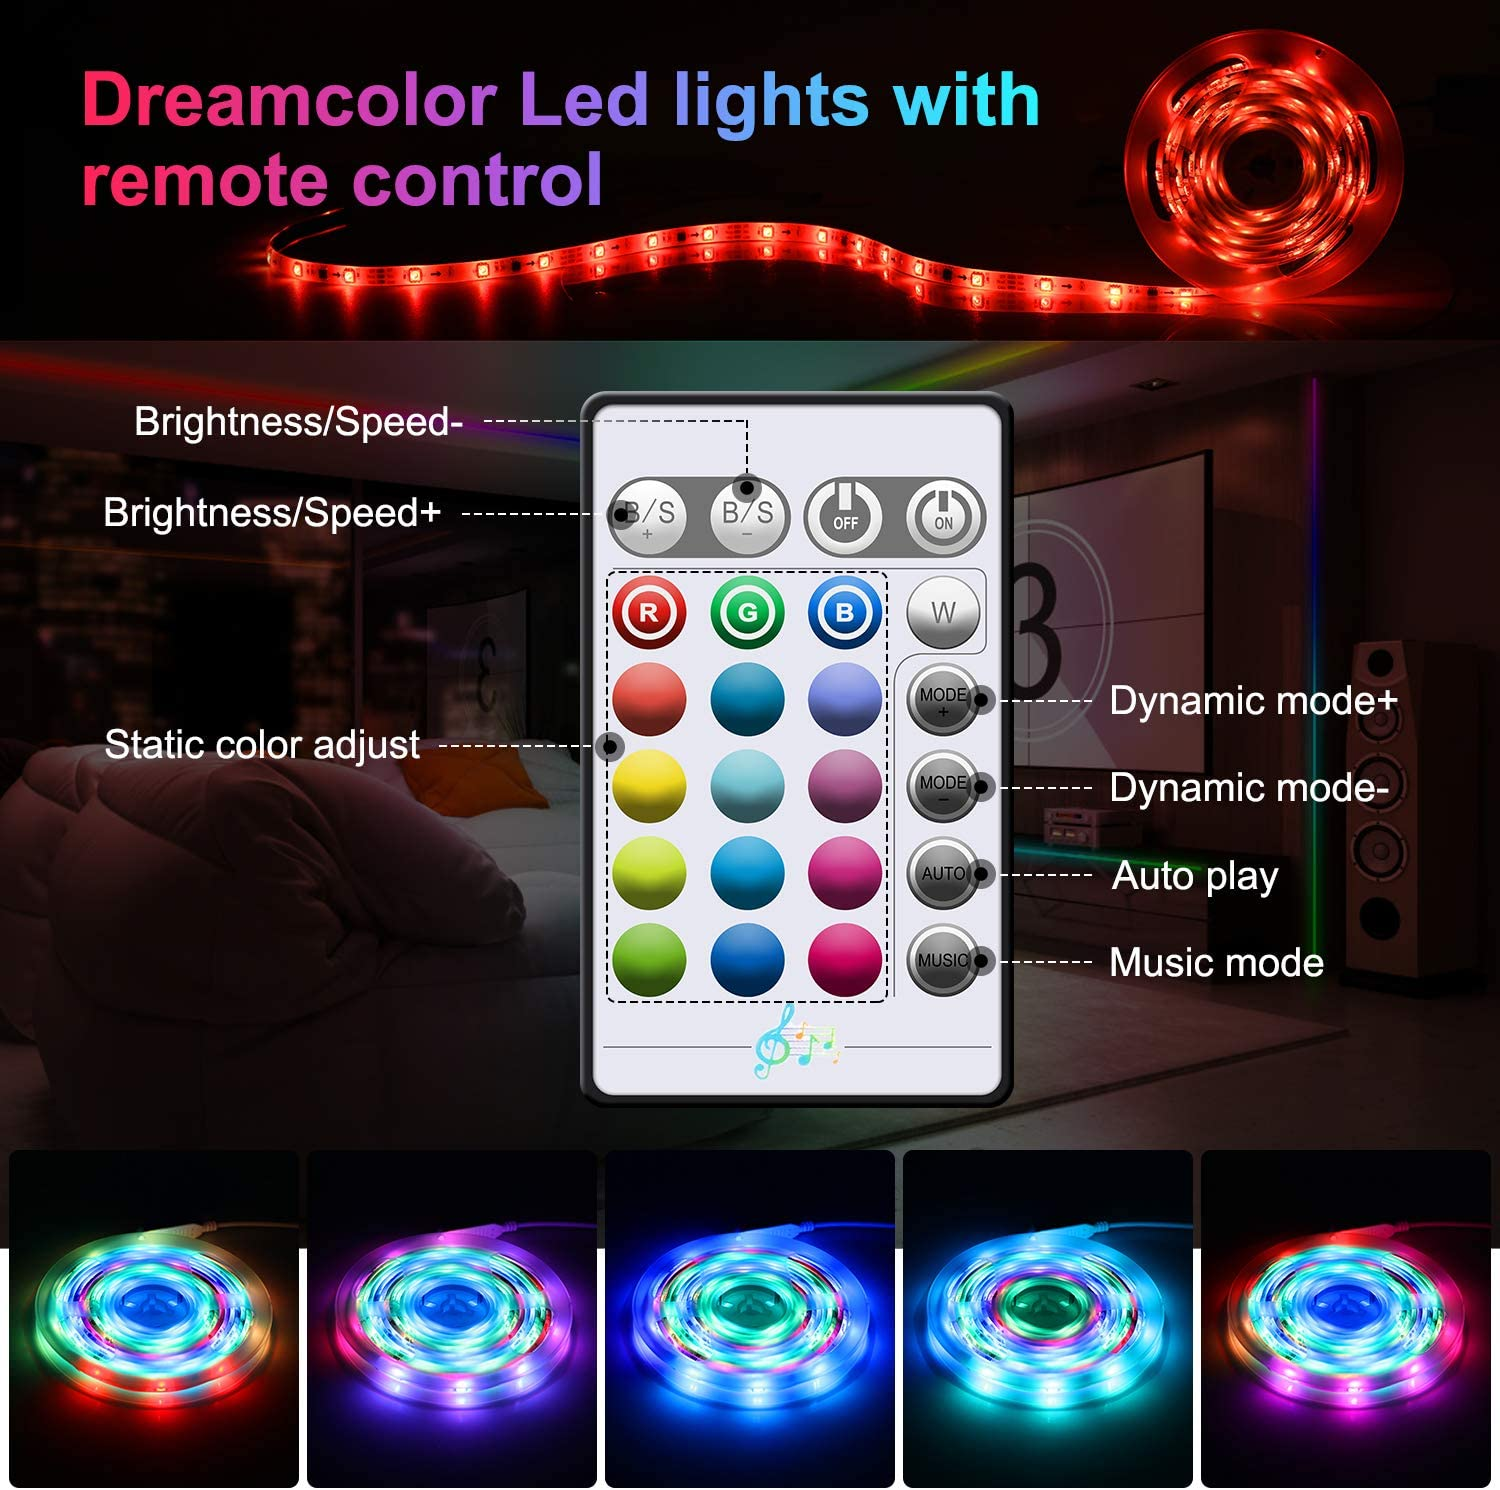 EWEIMA 20ft LED Mood Lights for Bedroom with Remote and IC Chips Bedroom Dreamcolor LED Strip Lights Music Sync Room Party Led Rope Lights Color Changing Light Strip with IP65 Waterproof for TV